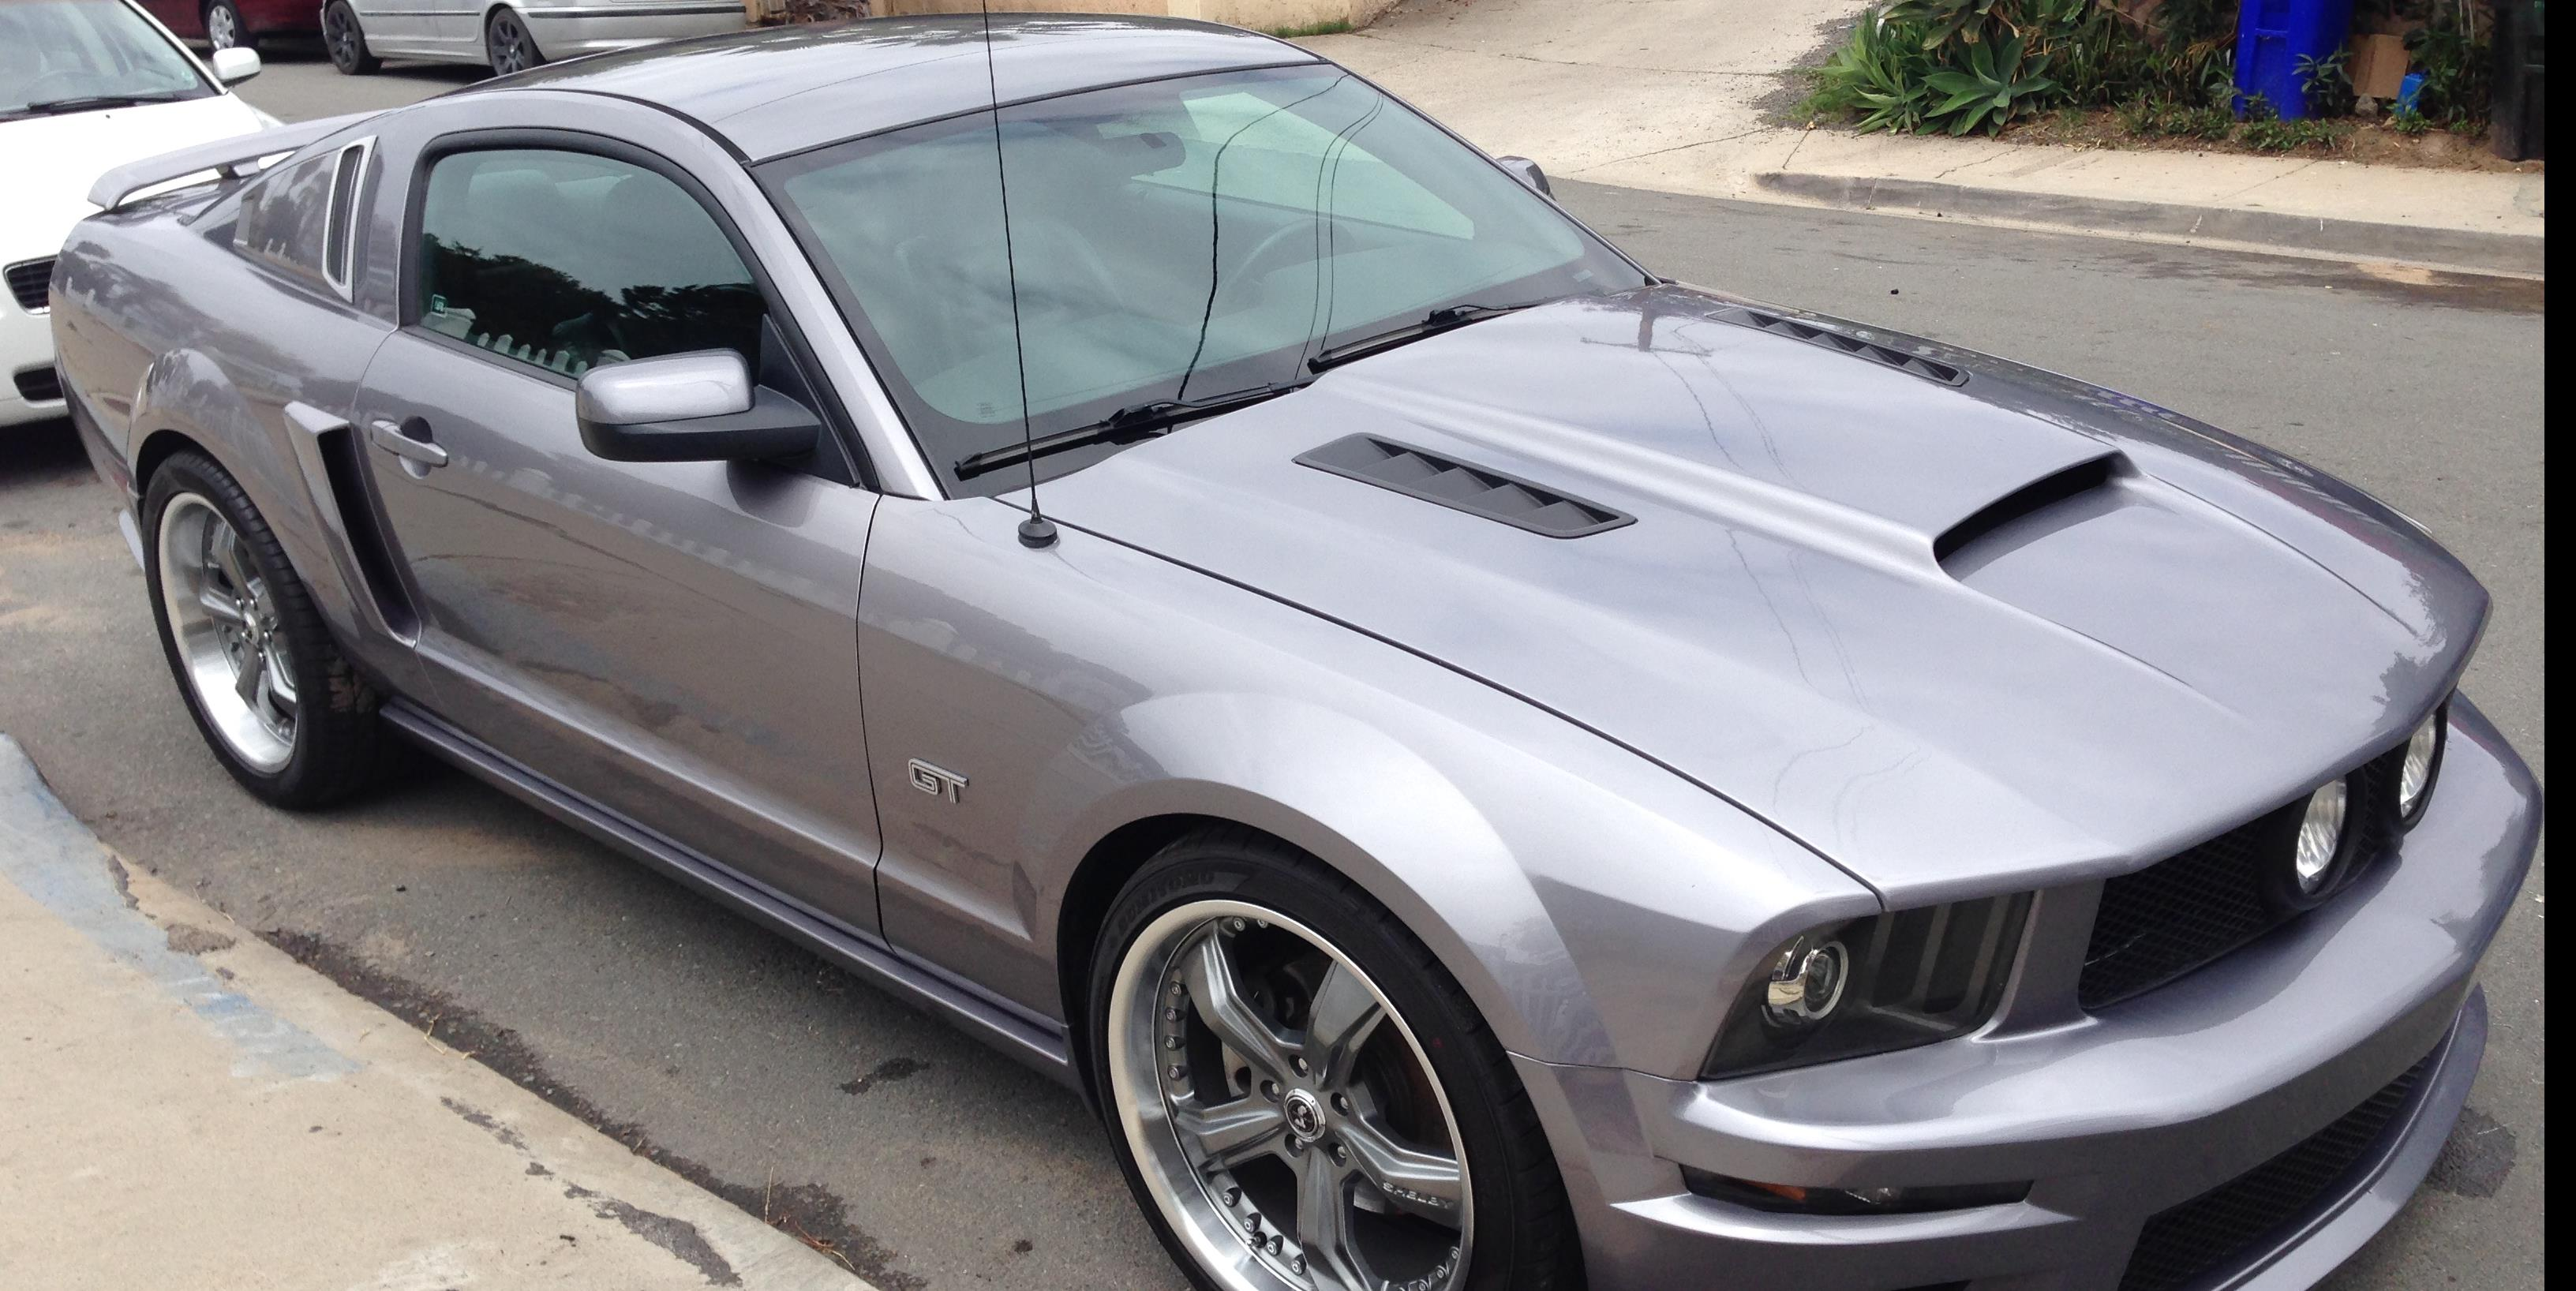 Dago75 2006 Ford Mustang